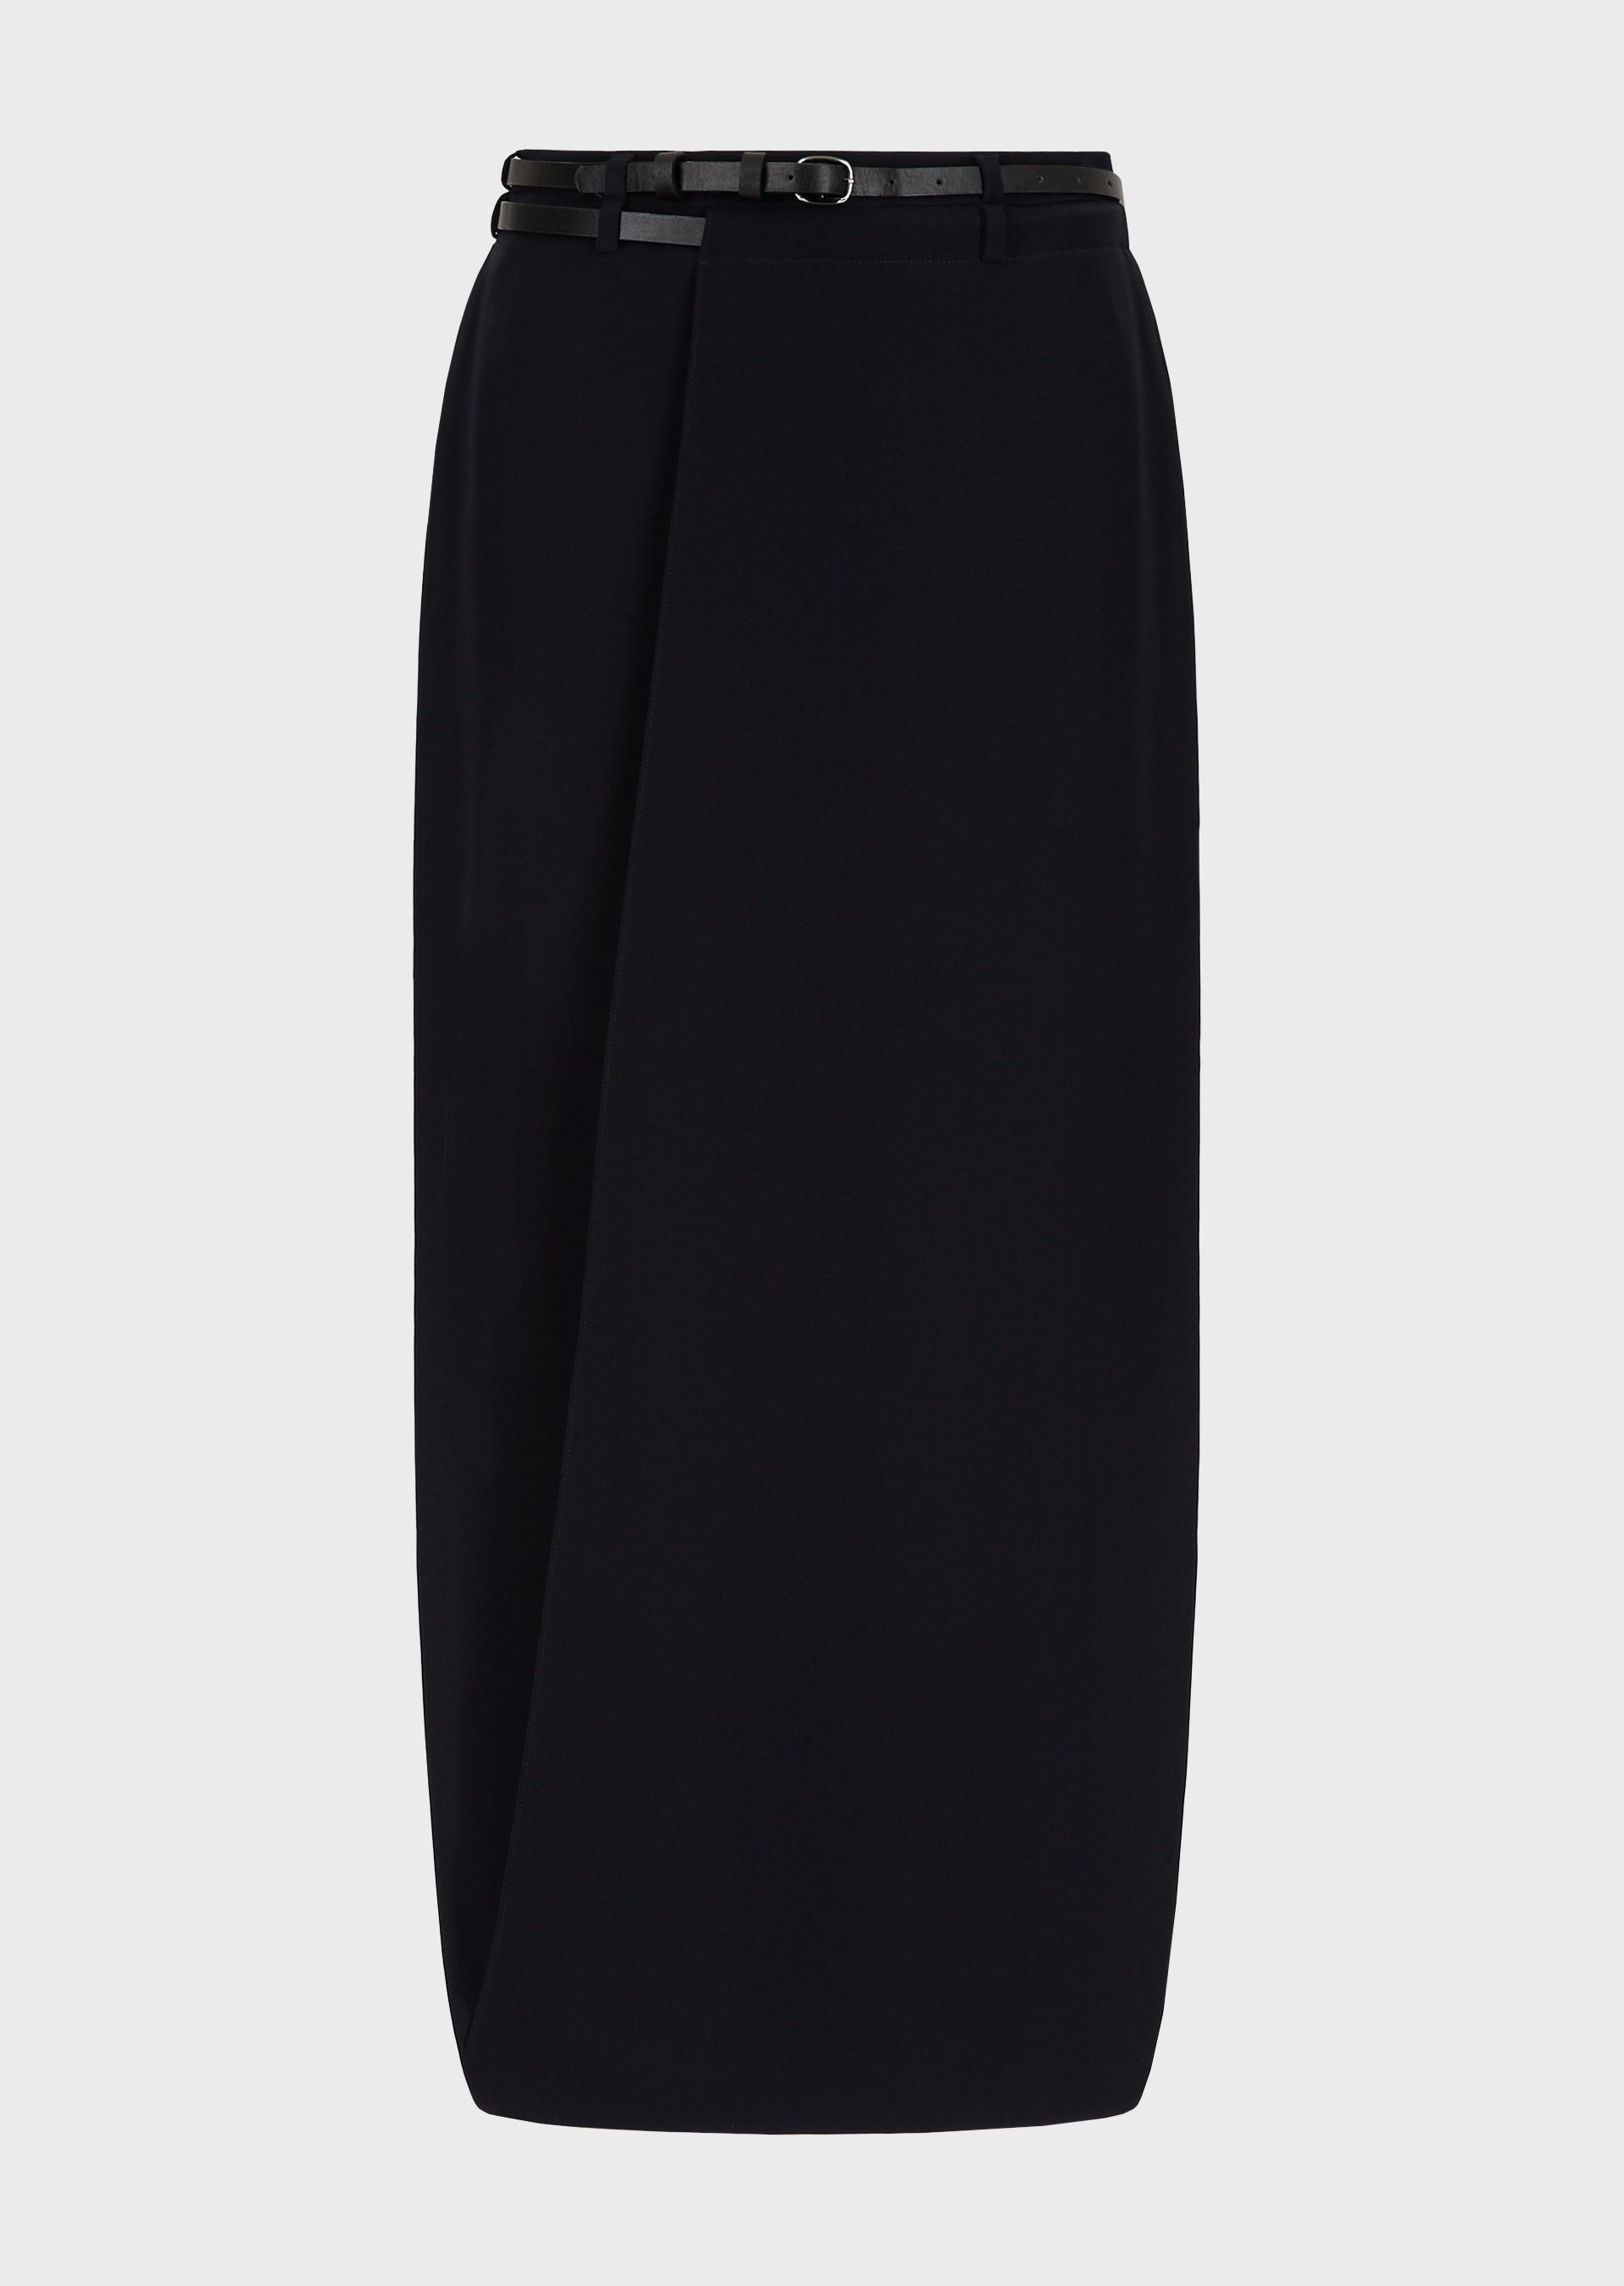 EMPORIO ARMANI Technical cady, below-mid-calf length skirt with leather belt